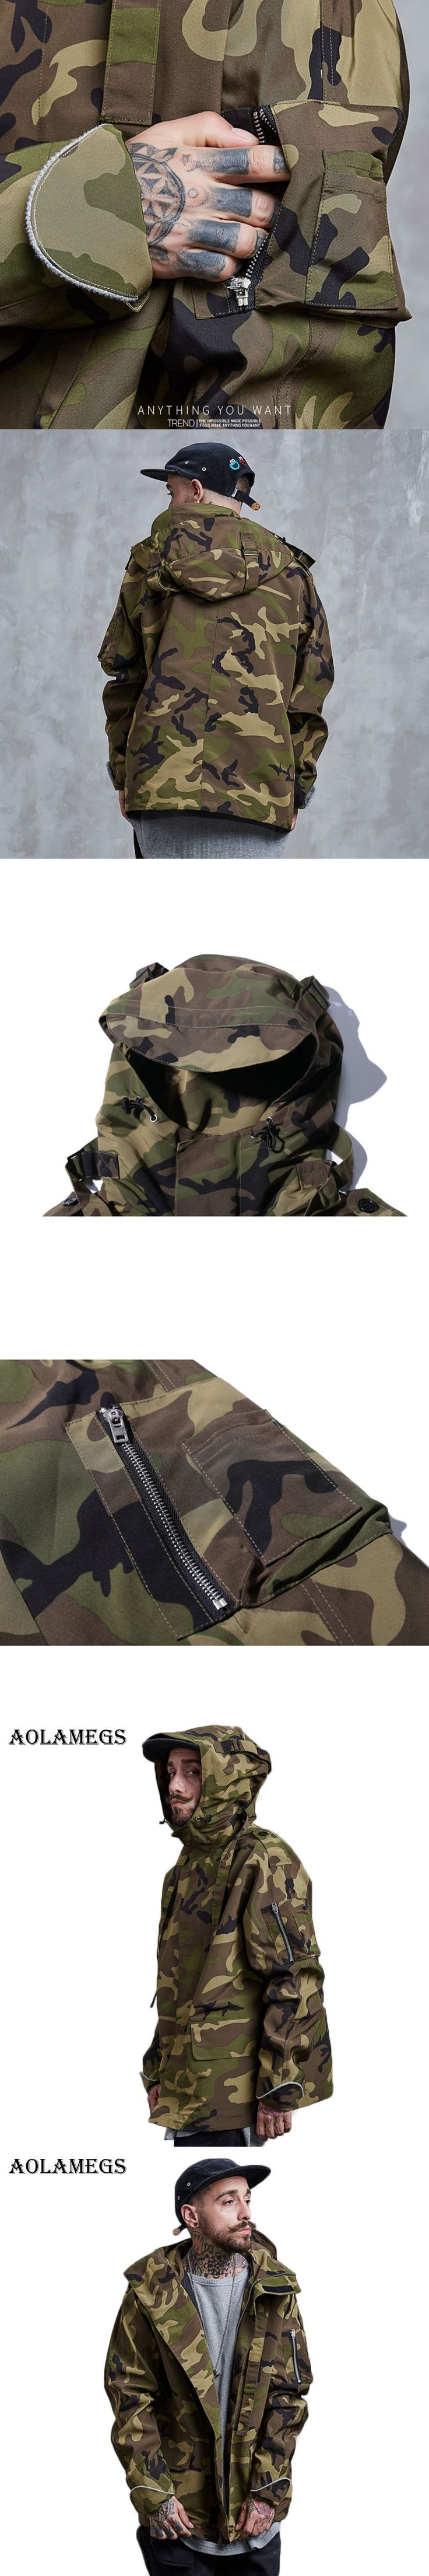 Aolamegs Bomber Jacket Camouflage Men's Jacket Turn-down Collar Rib Sleeve Fashion Outwear Men Coat Bomb Baseball Jackets Autumn